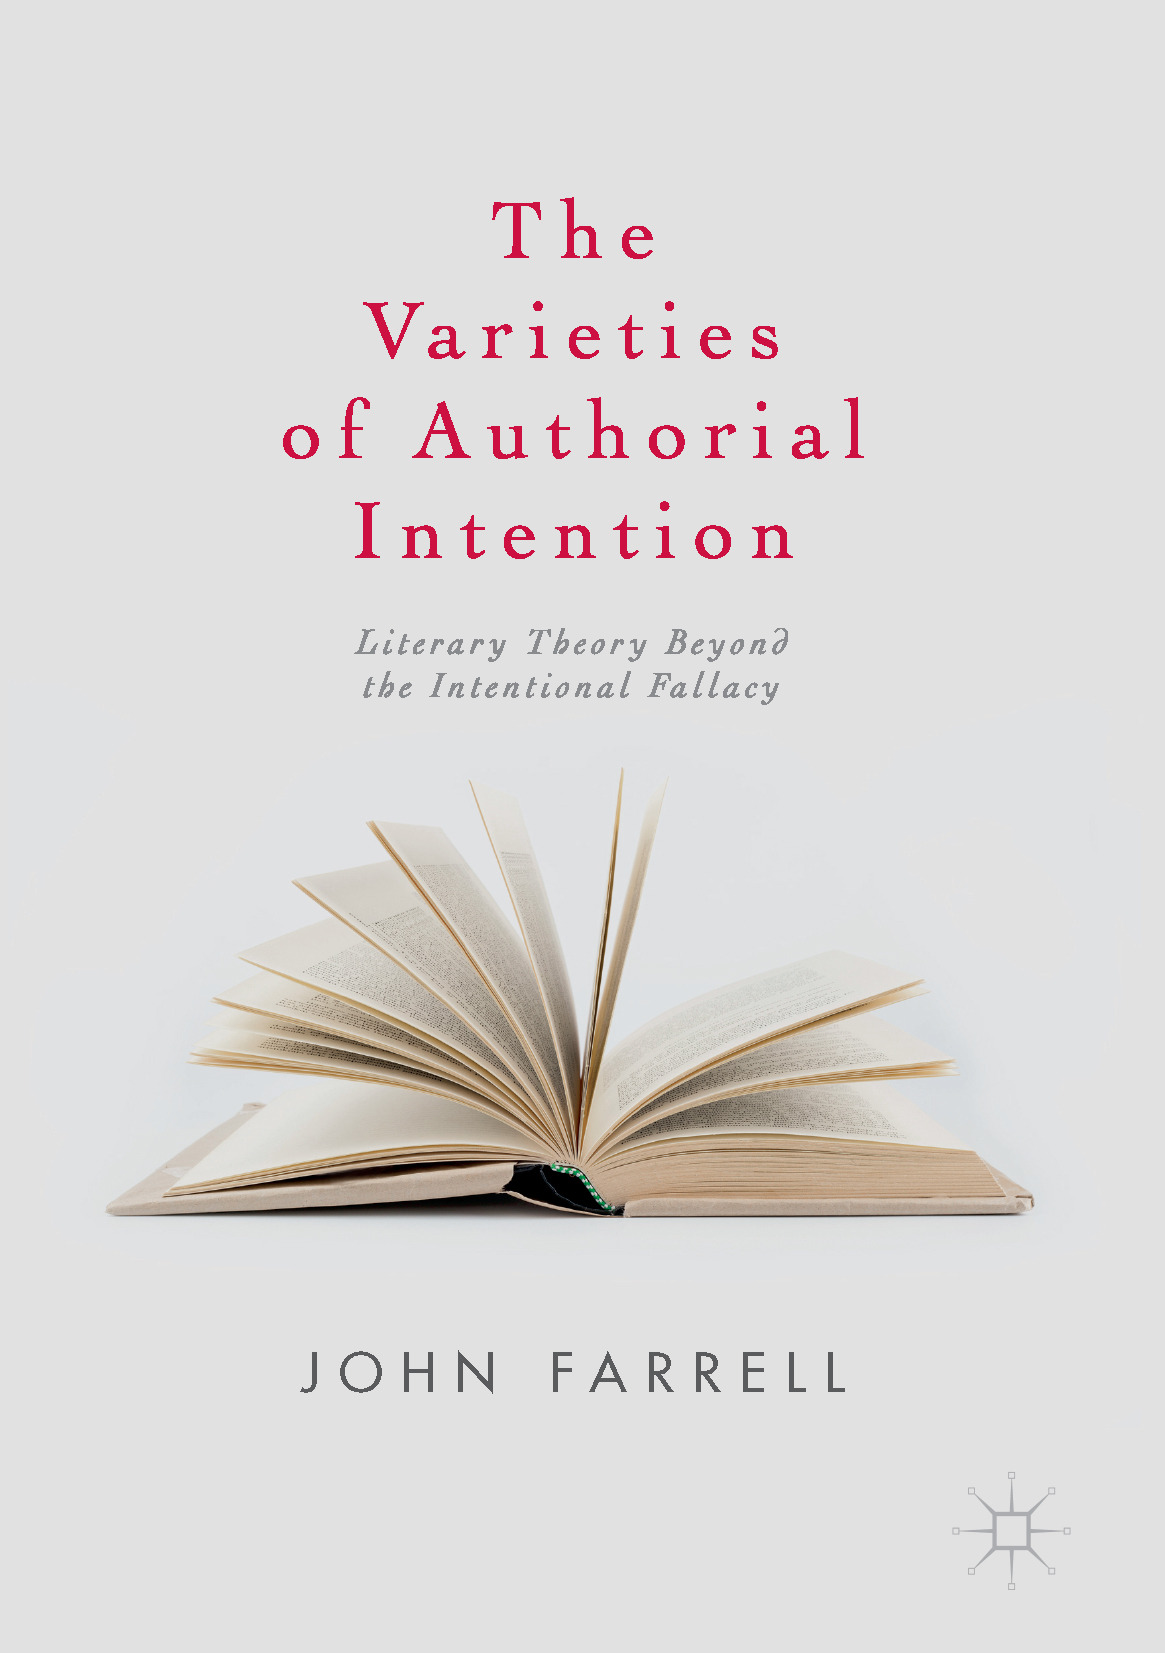 Farrell, John - The Varieties of Authorial Intention, ebook